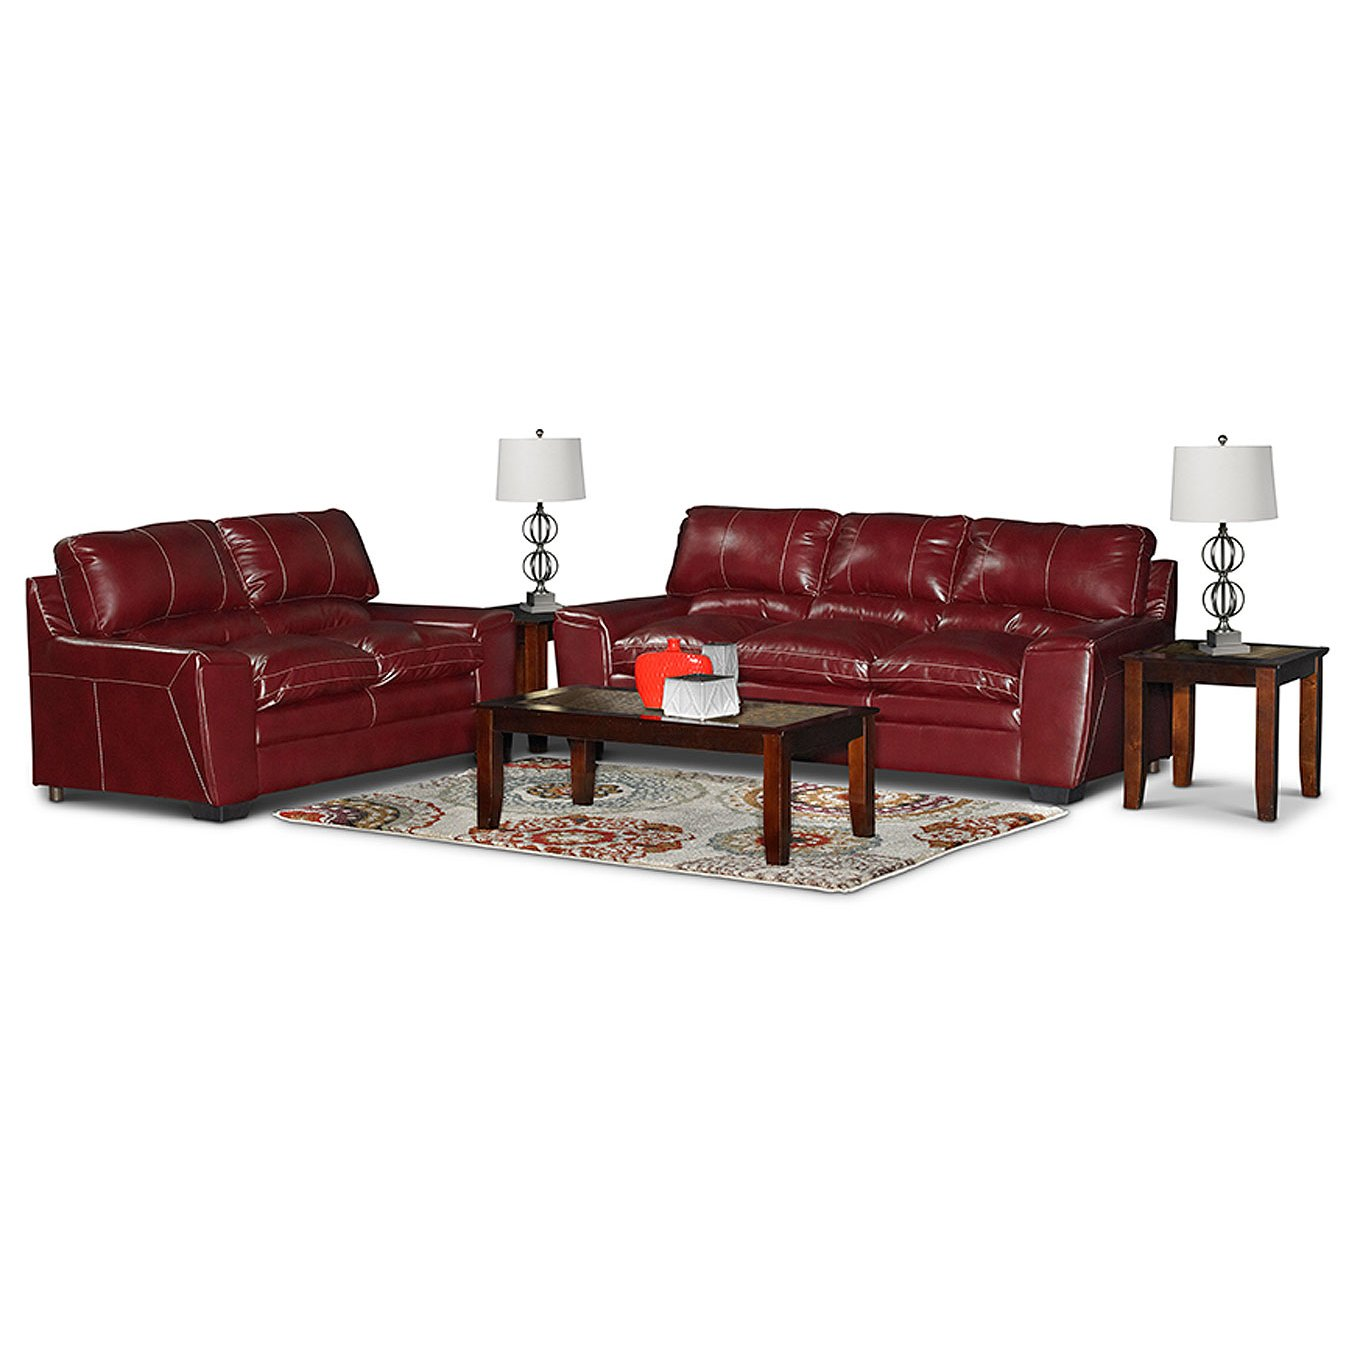 Casual Contemporary Red 5 Piece Living Room Set Caruso